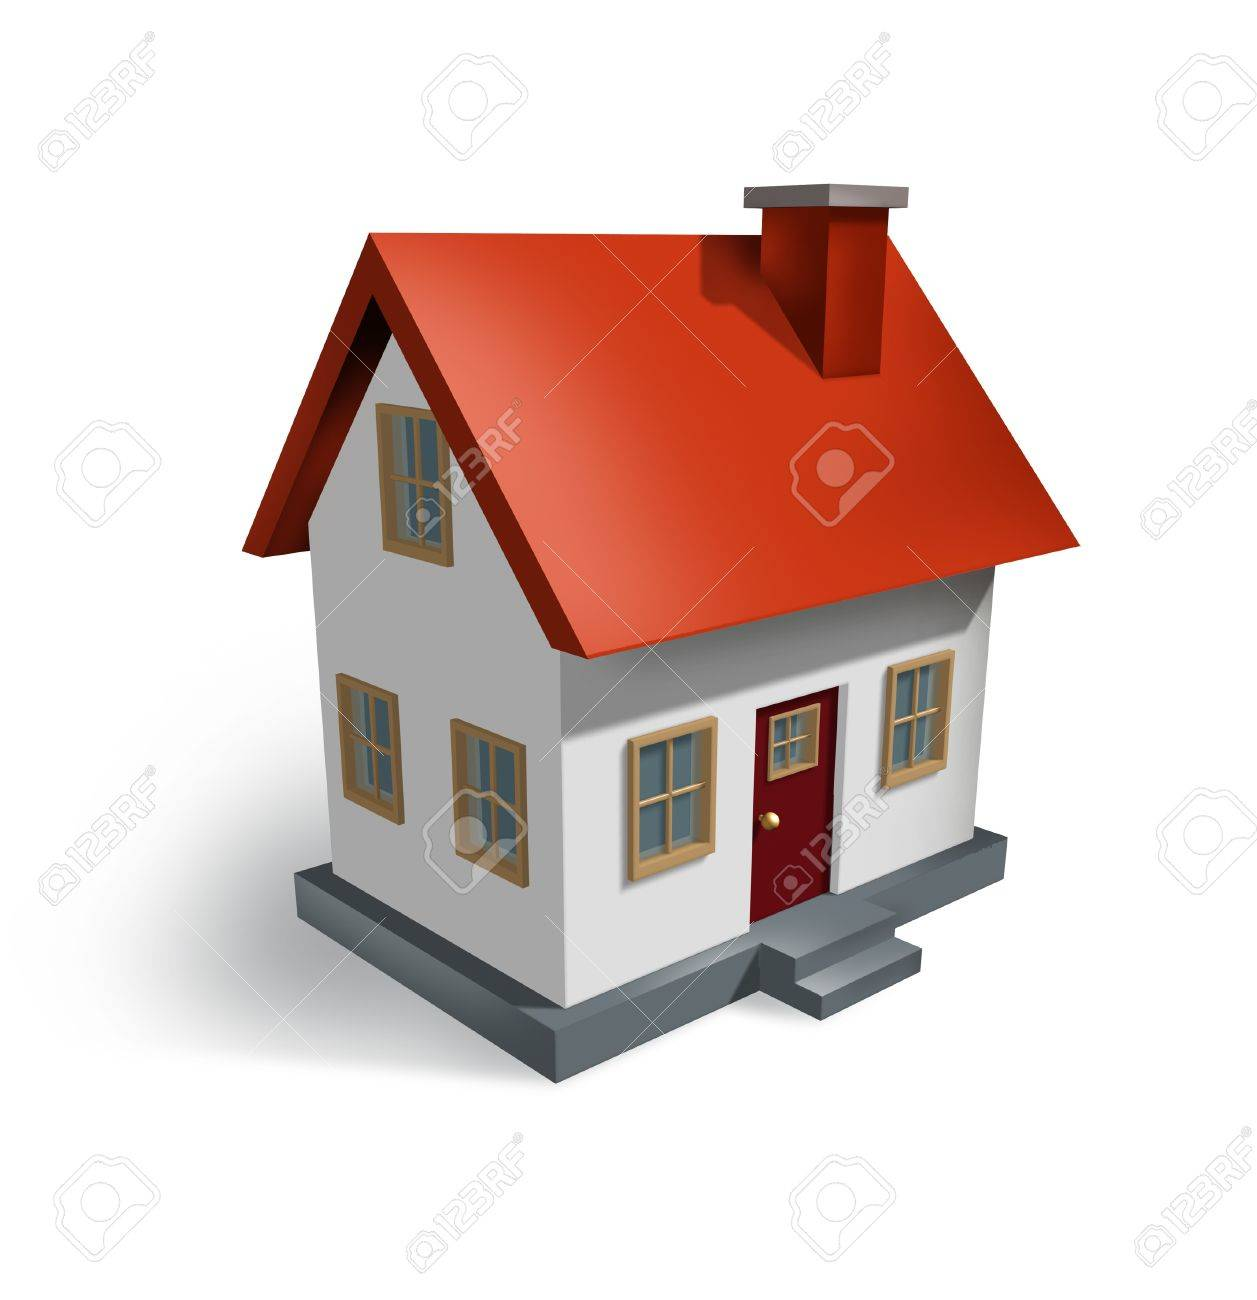 Real Estate and the housing industry  for real estate homes for sale  as a symbol of the residential house and home market as well as the construction economy as shown by a single biulding structure on white. Stock Photo - 11840344